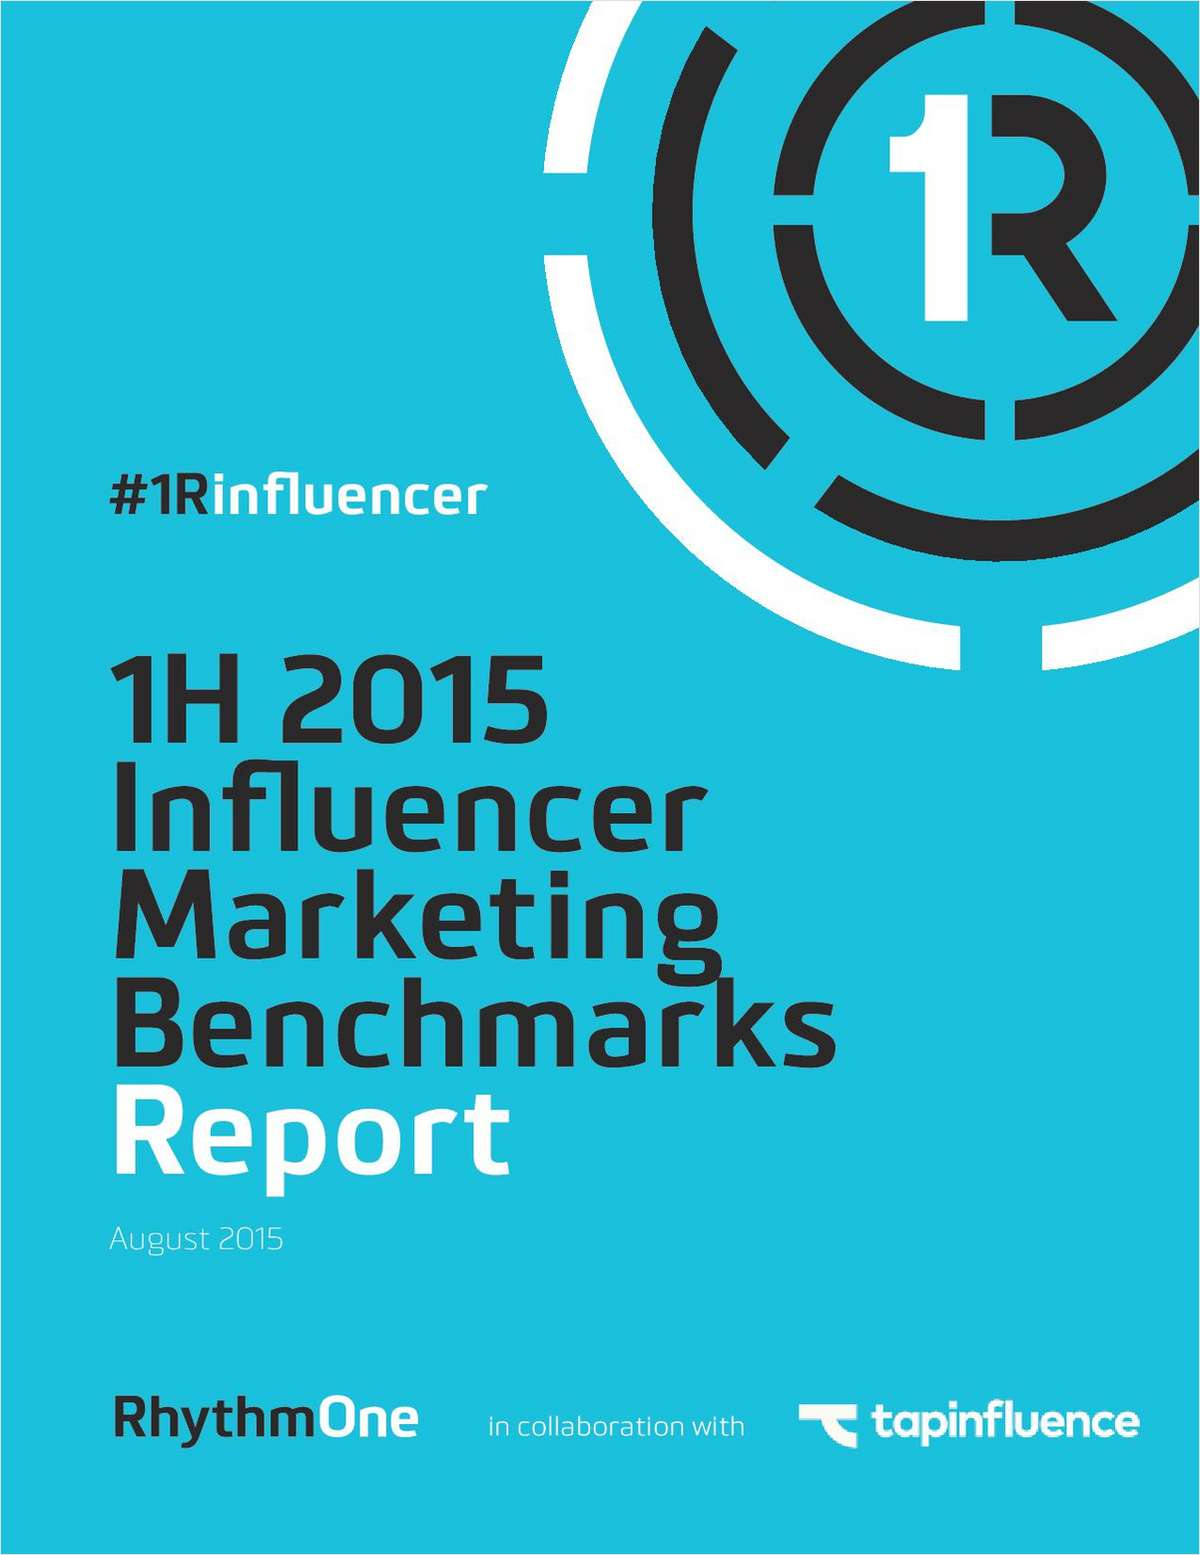 1H 2015 Influencer Marketing Benchmarks Report